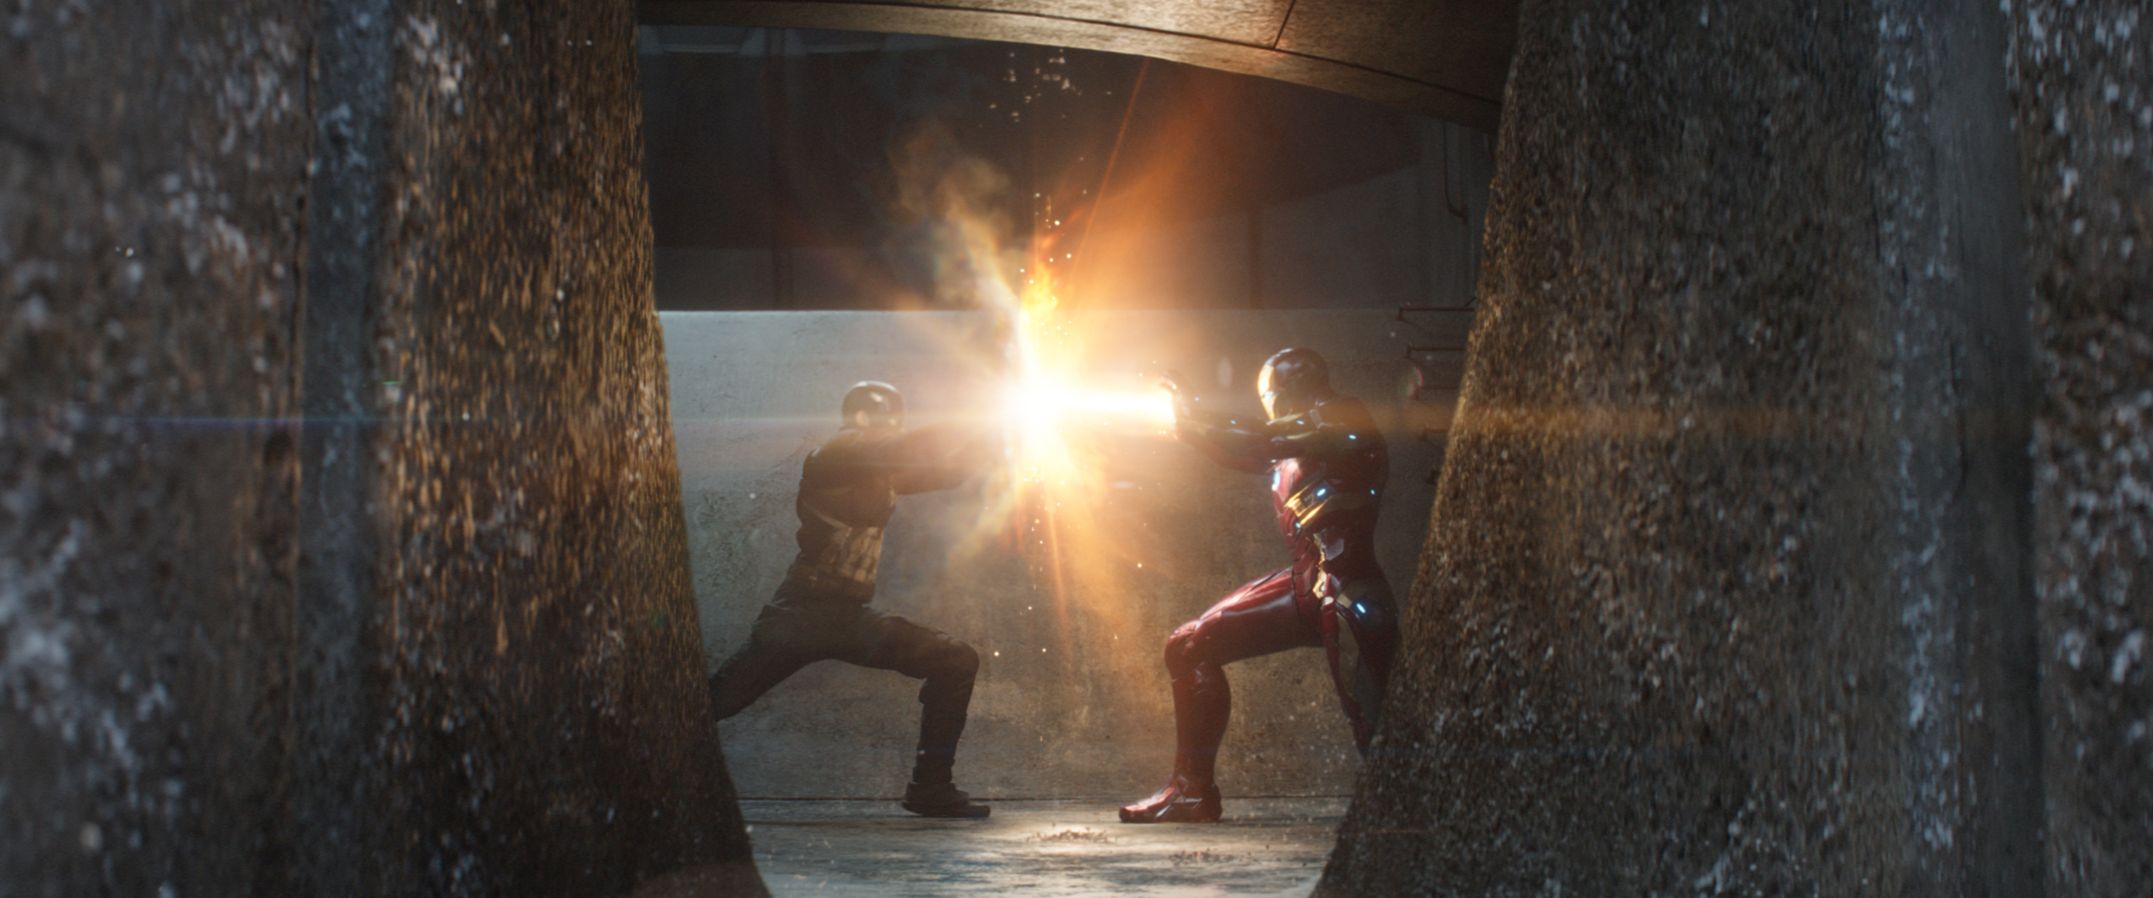 iron_man_vs_captain_america.jpg